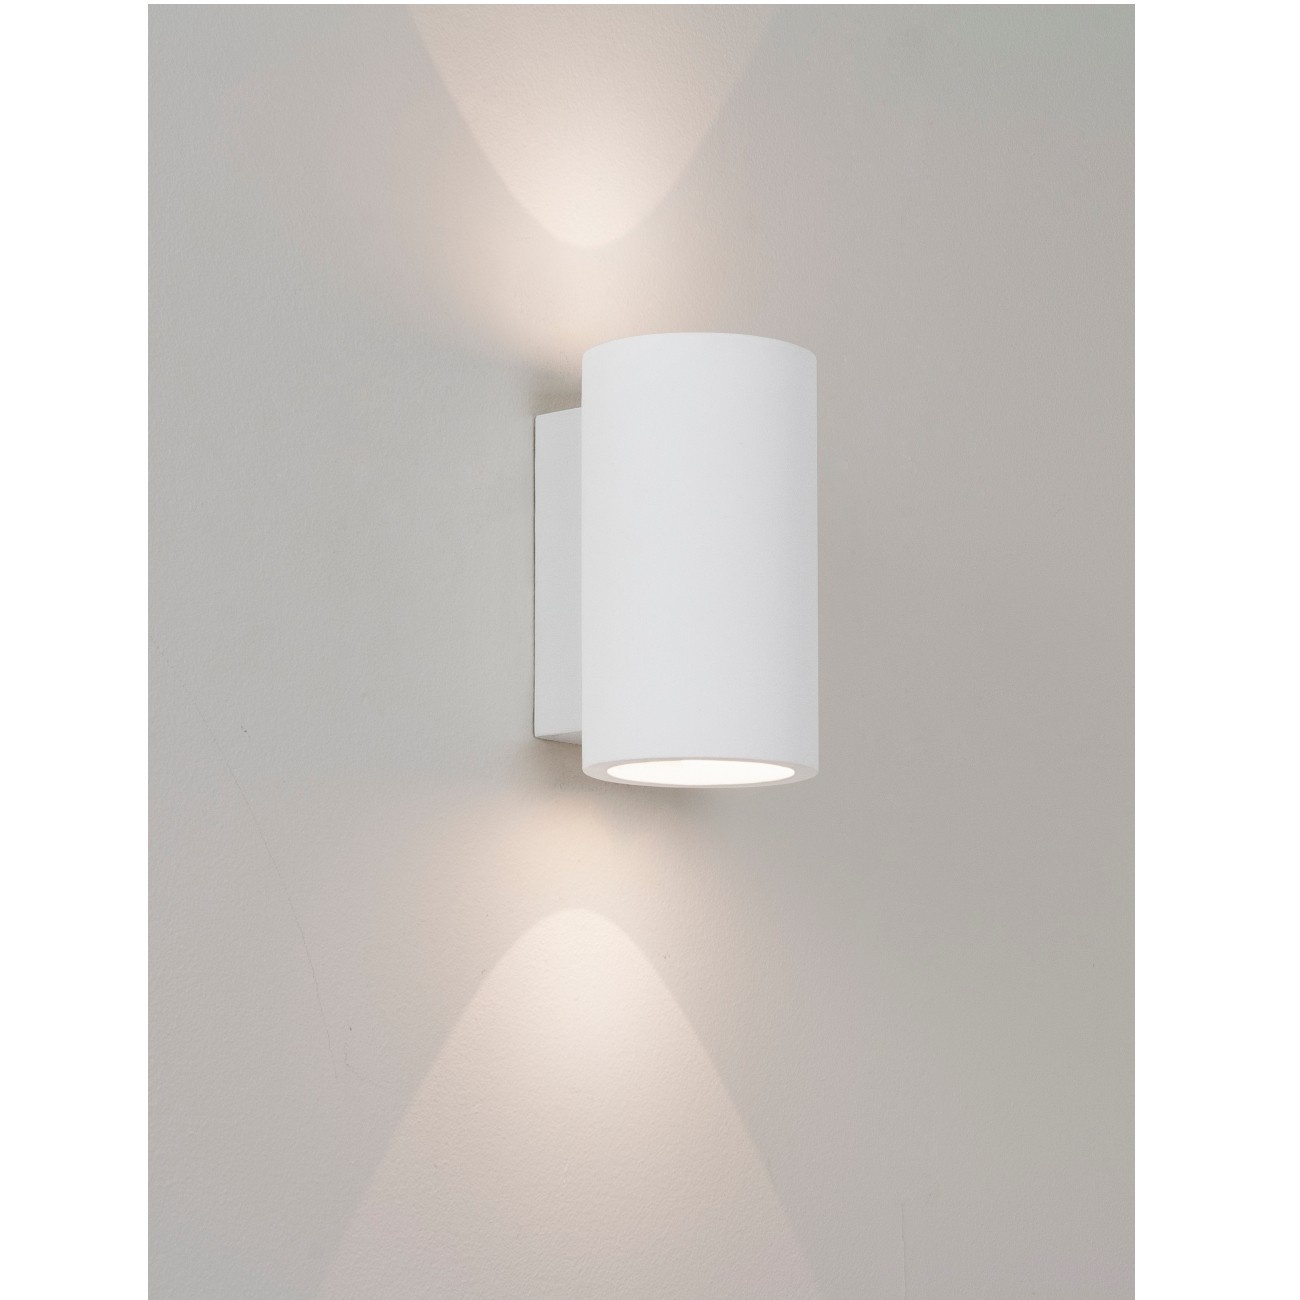 Moderne LED-Wandleuchte, Up- and Downlight, Gips Weiß BOLOGNA 160 Astro Weiß